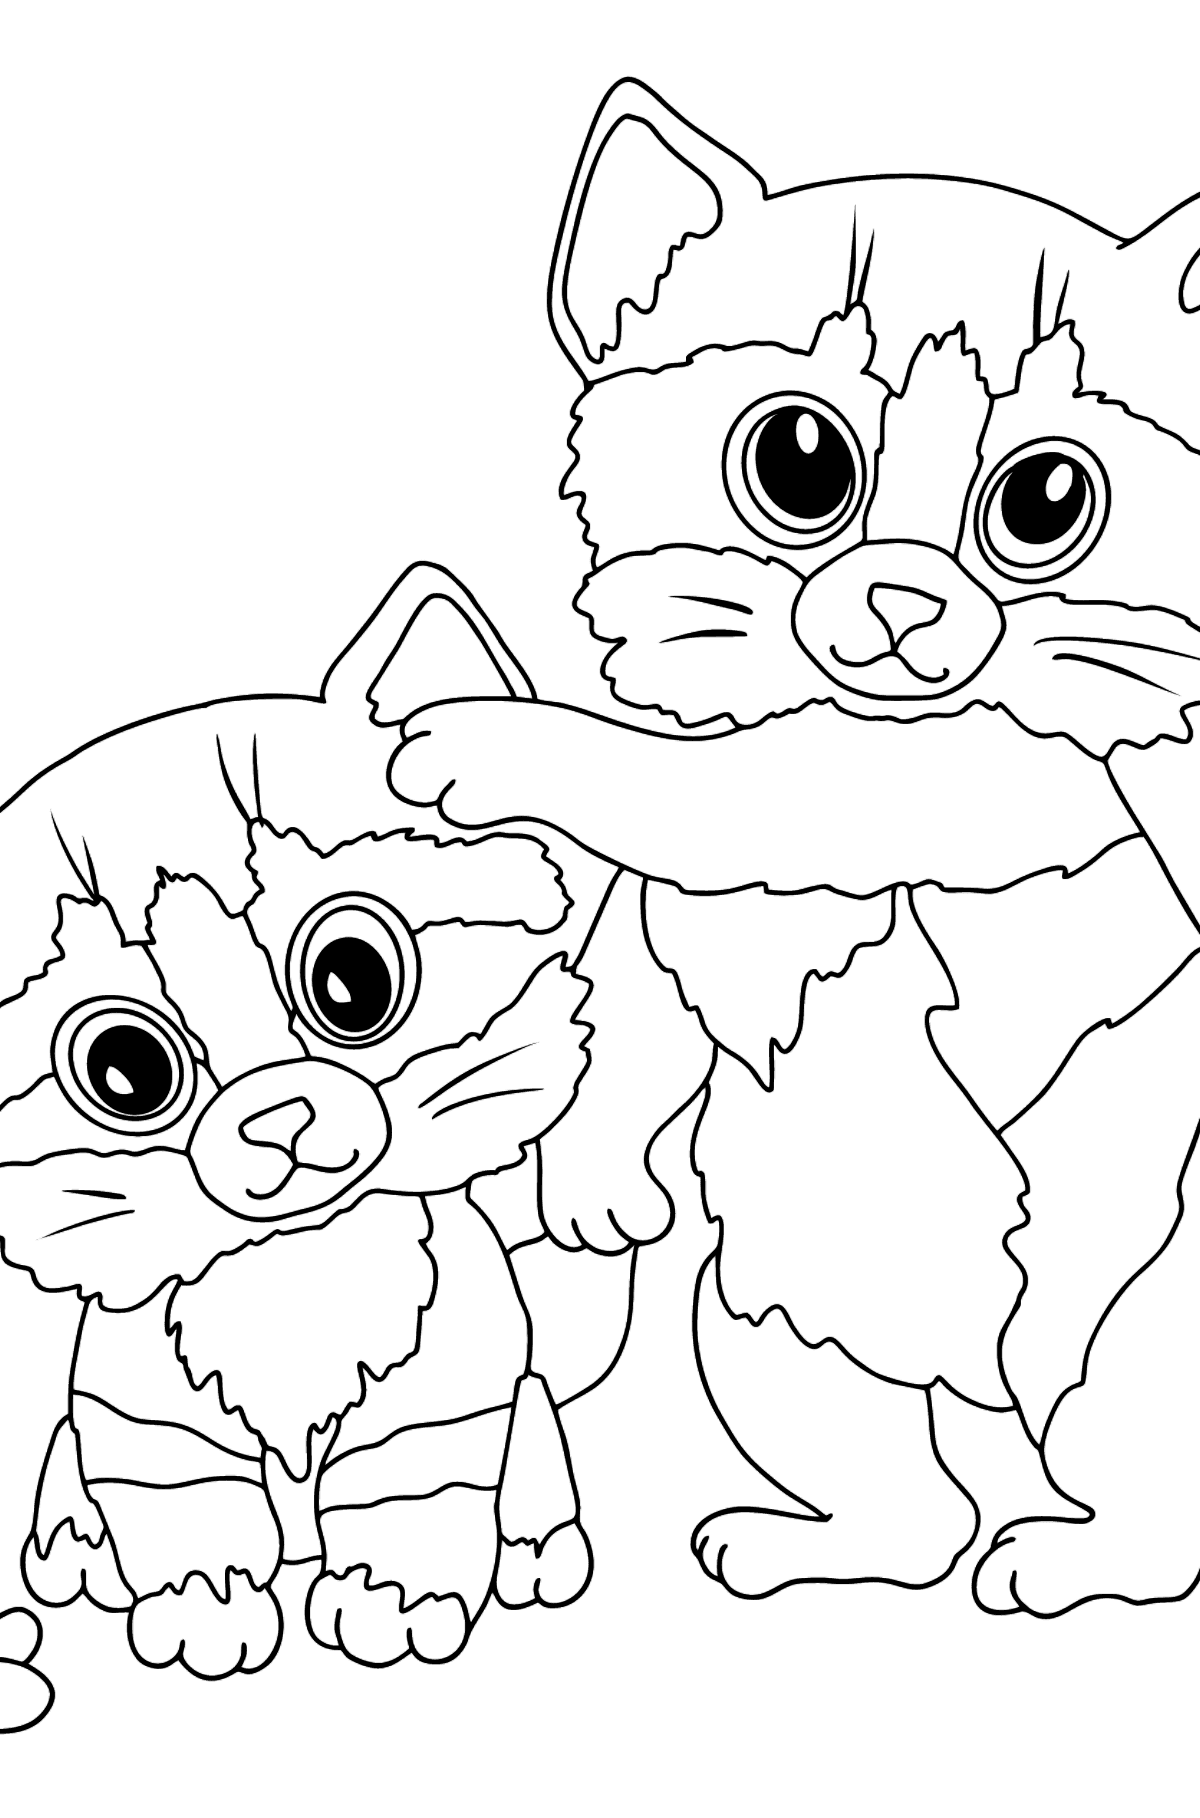 Coloring Page - Kittens are Jumping with a Butterfly - Coloring Pages for Kids